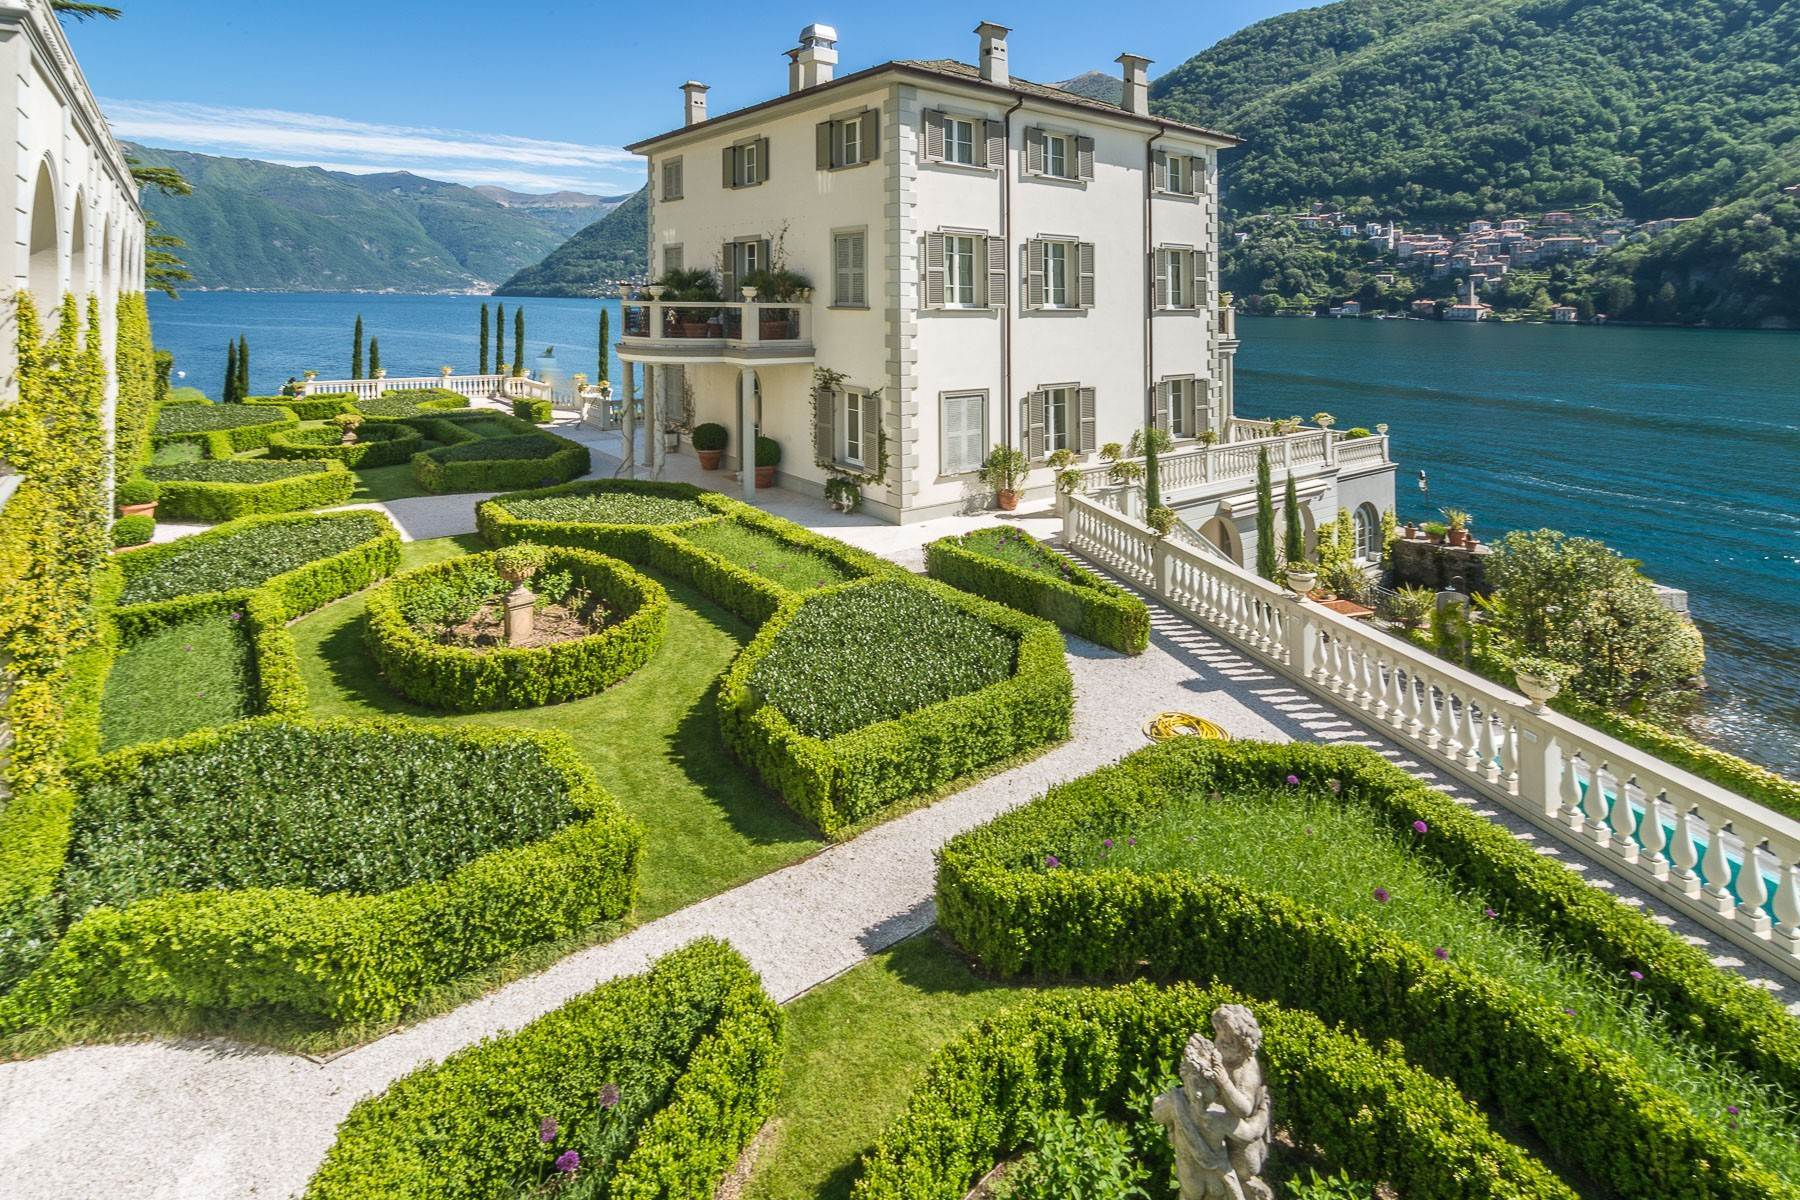 Property for Sale at Gorgeous lakefront trophy estate Laglio, Como Italy